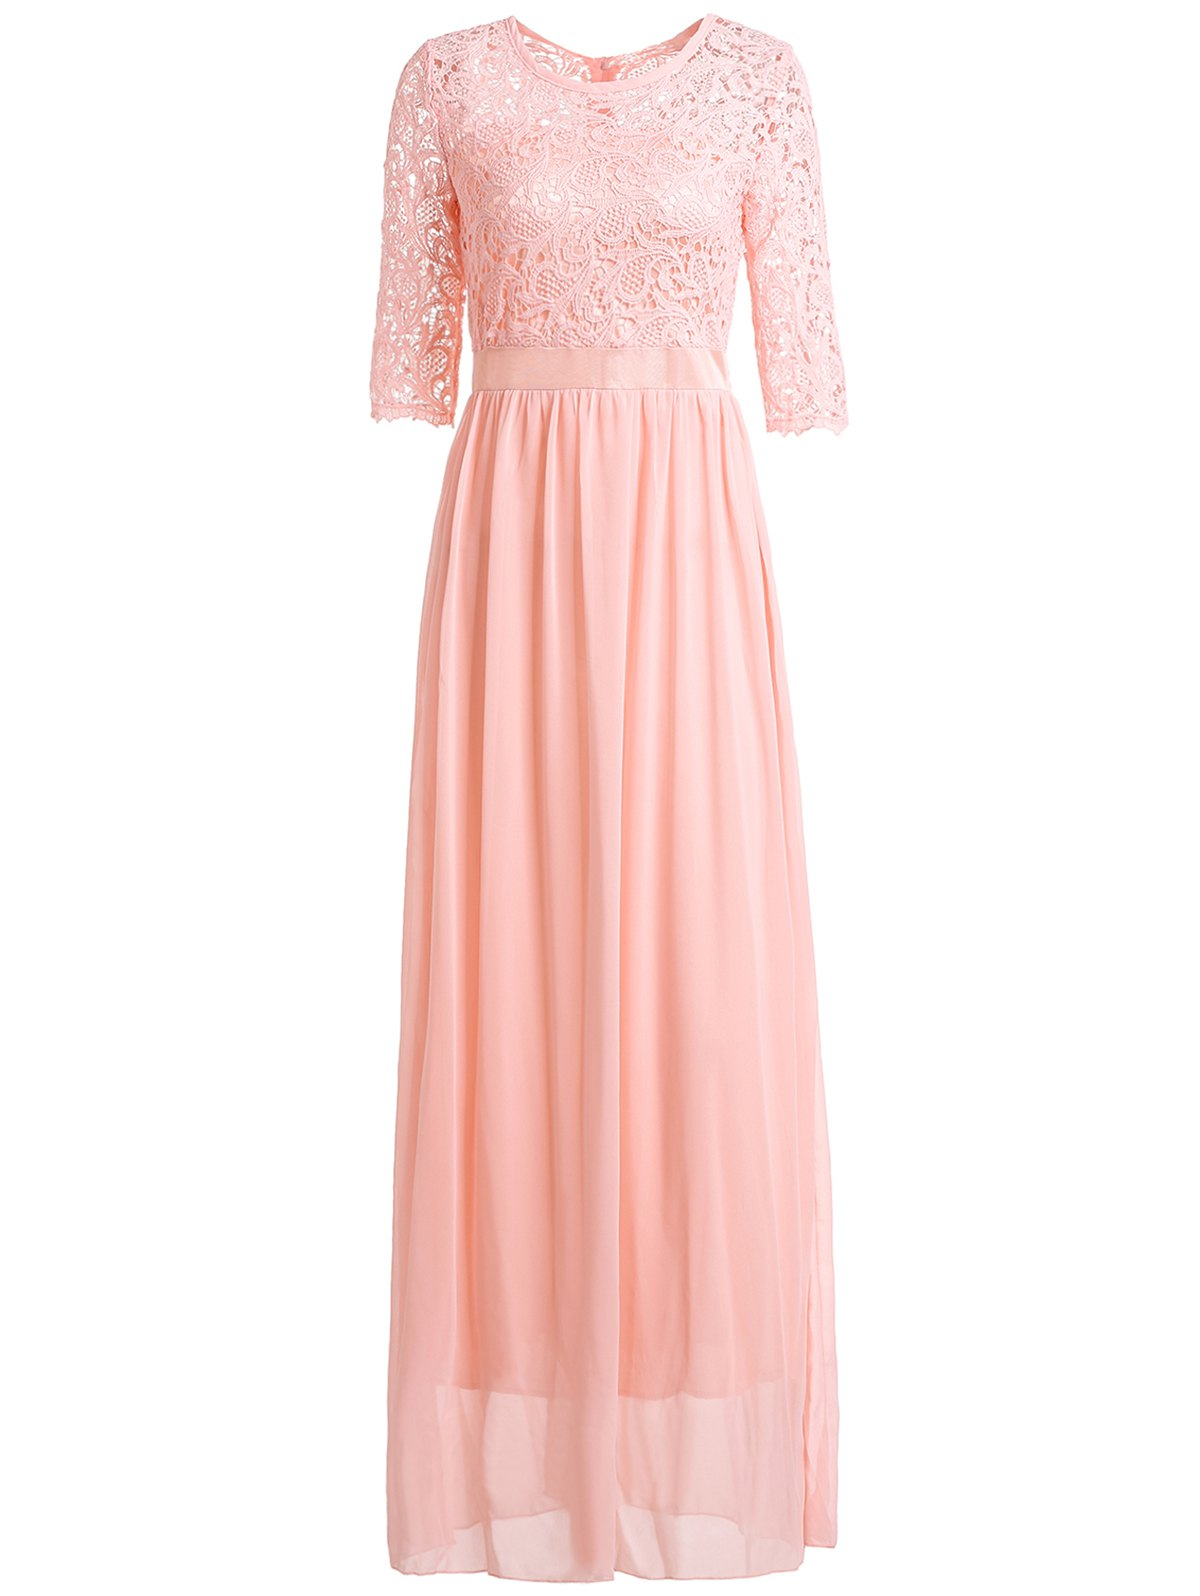 Best Chiffon Long Formal Eveing Prom Dress with Sleeves